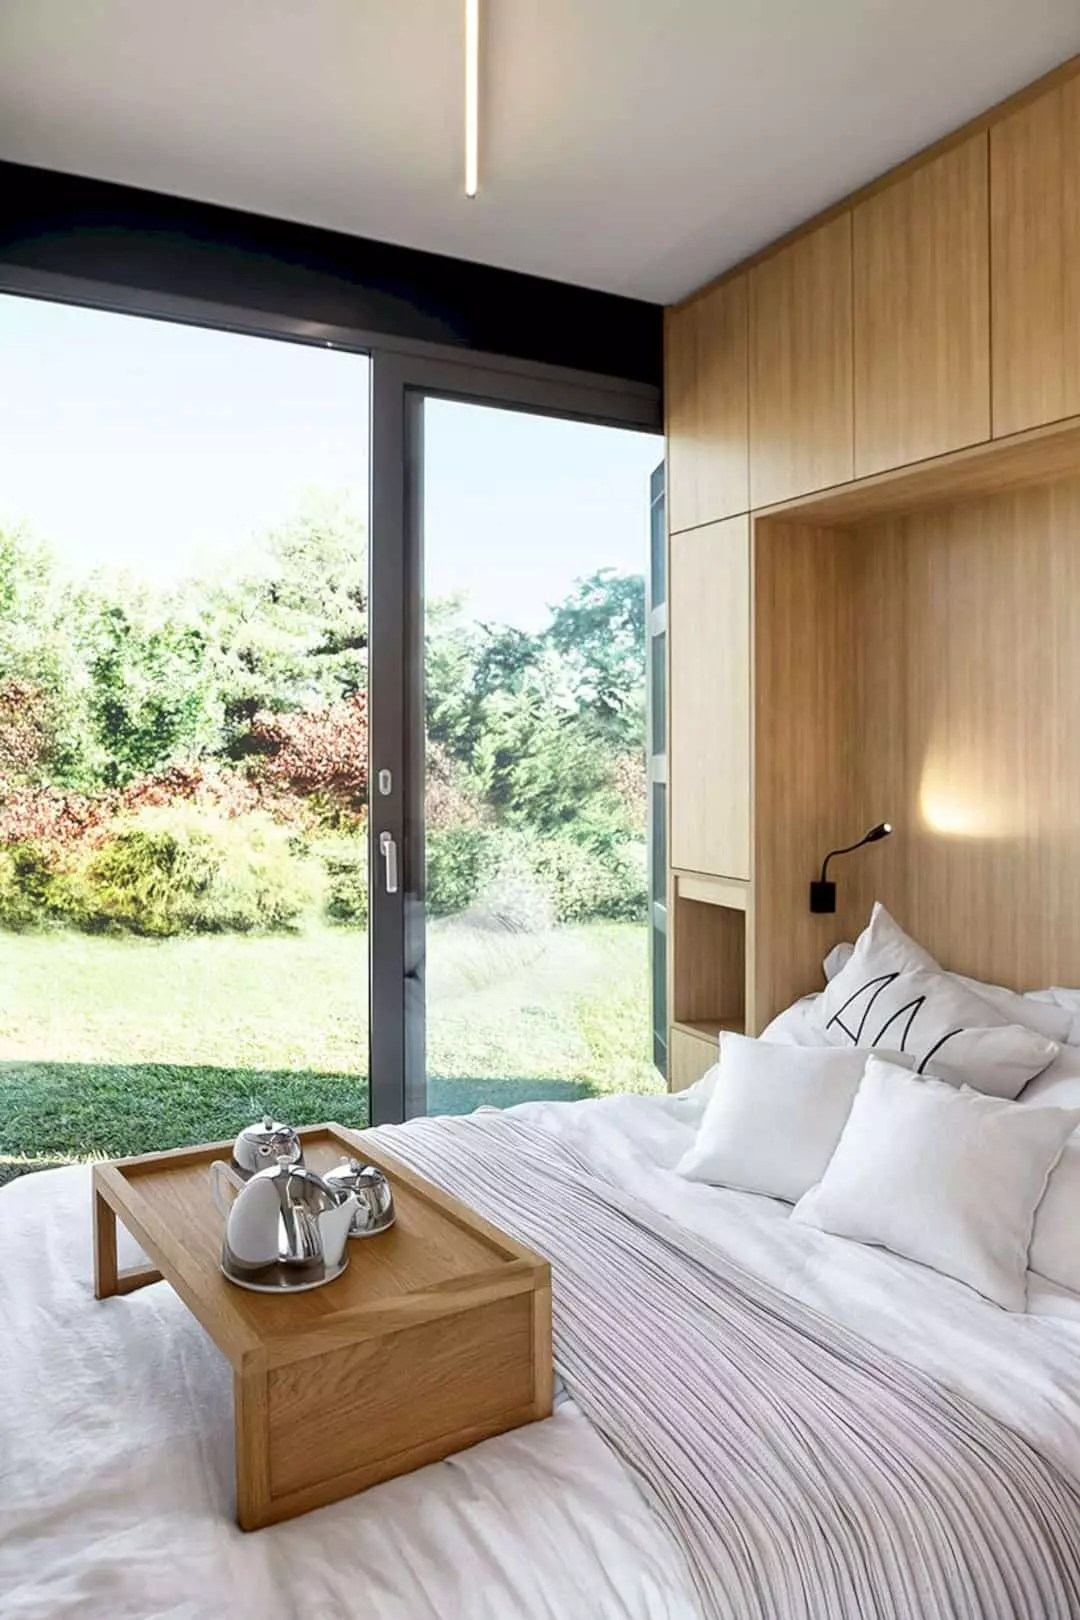 A Modular And Environmentally Friendly Prototype Of A Modern Dwelling 3